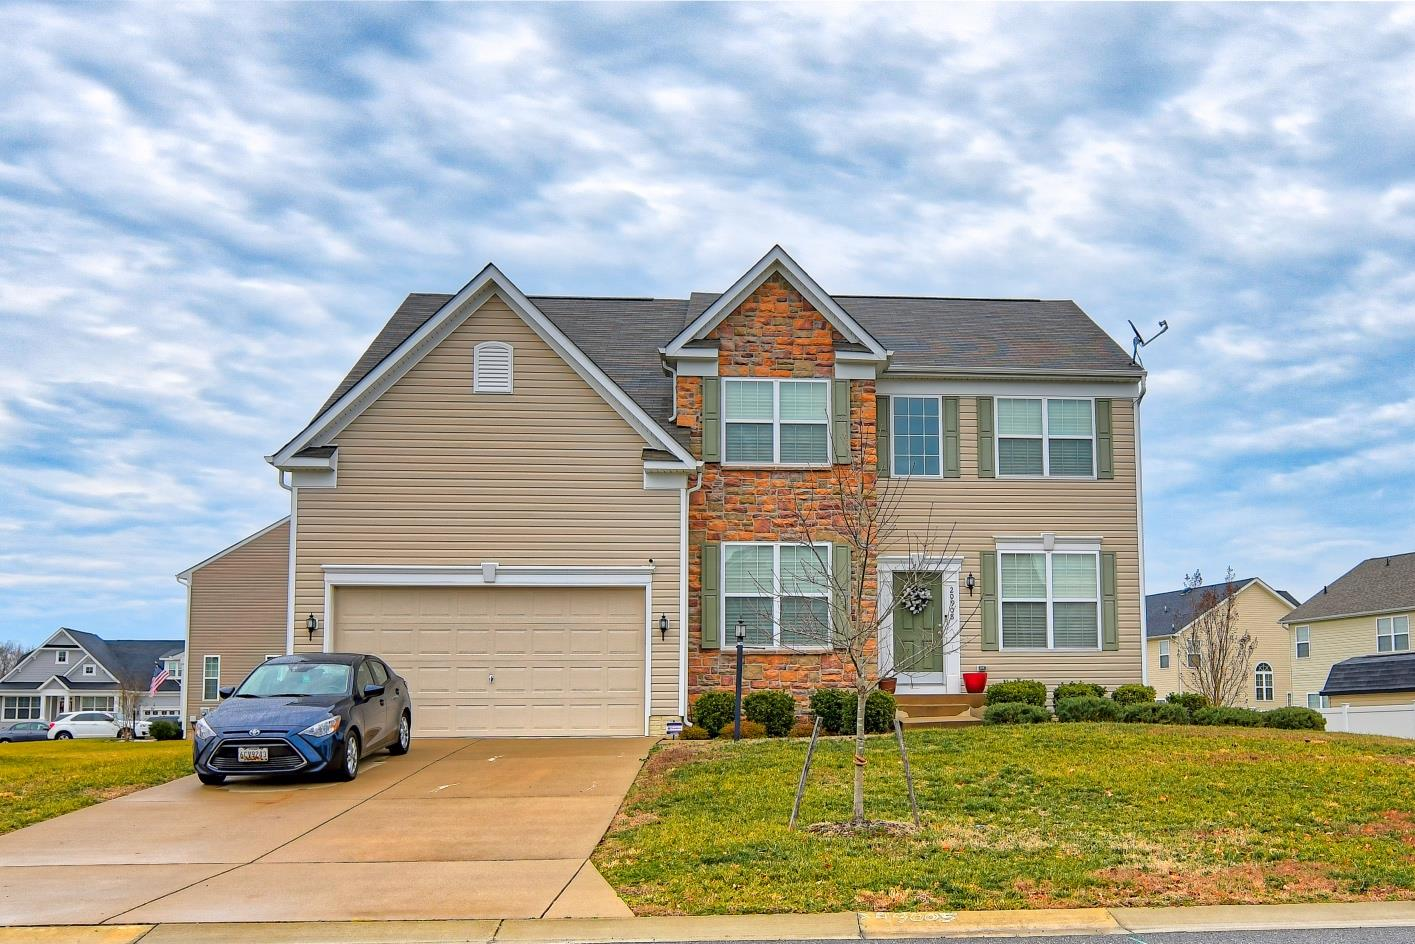 Lexington Park, St Mary's County - 20908 Rowan Knight is a Beautiful Single Family Home in Pembrooke Community off of Willows Road!  Listed by Marie Lally, Realtor with O'Brien Realty of Southern Maryland! The Best of Southern MD